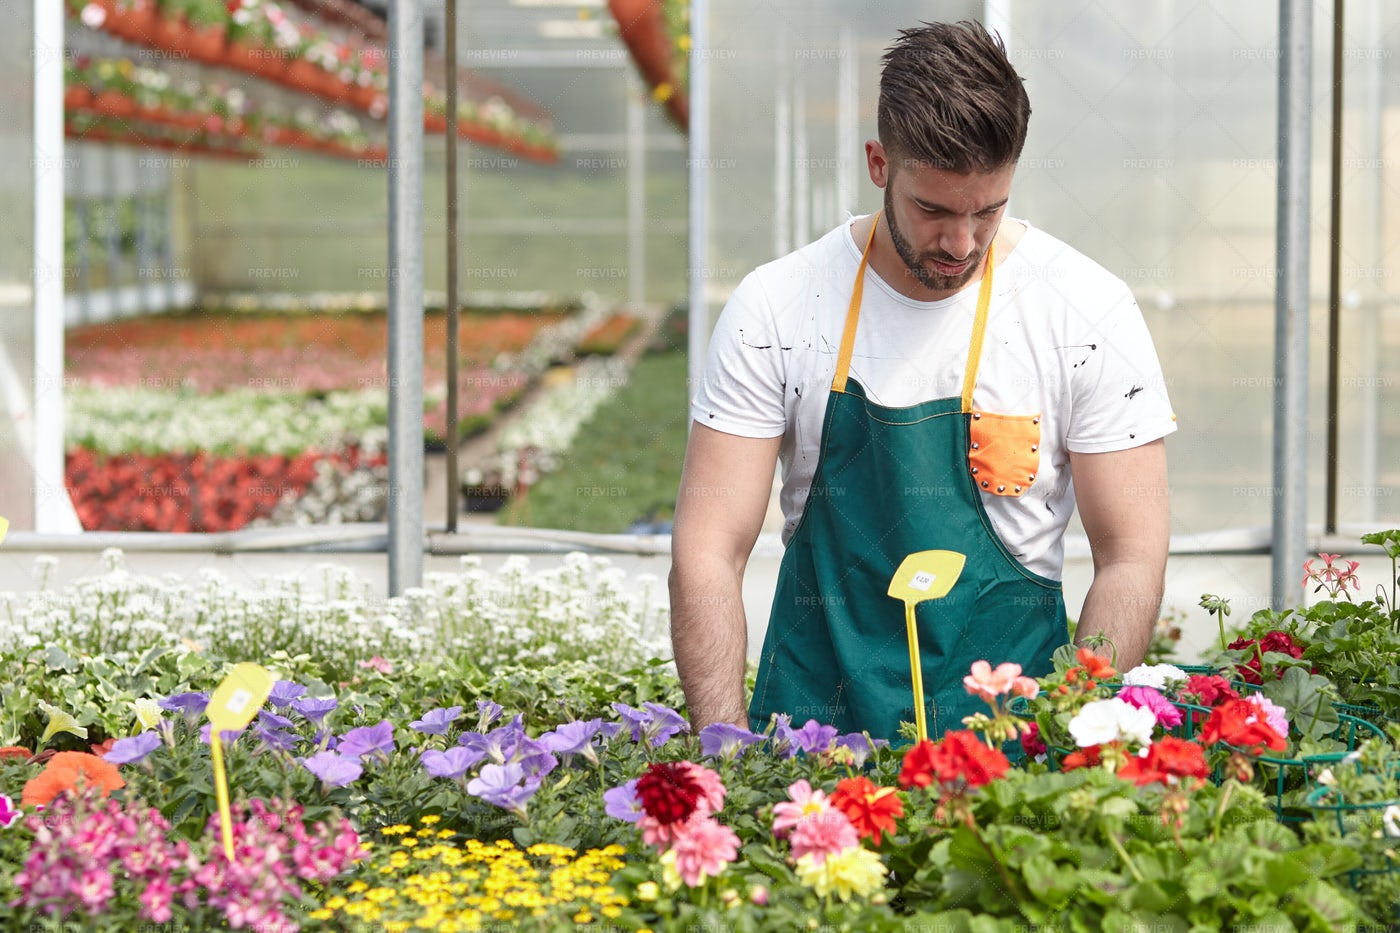 Man Working In A Plant Nursery: Stock Photos